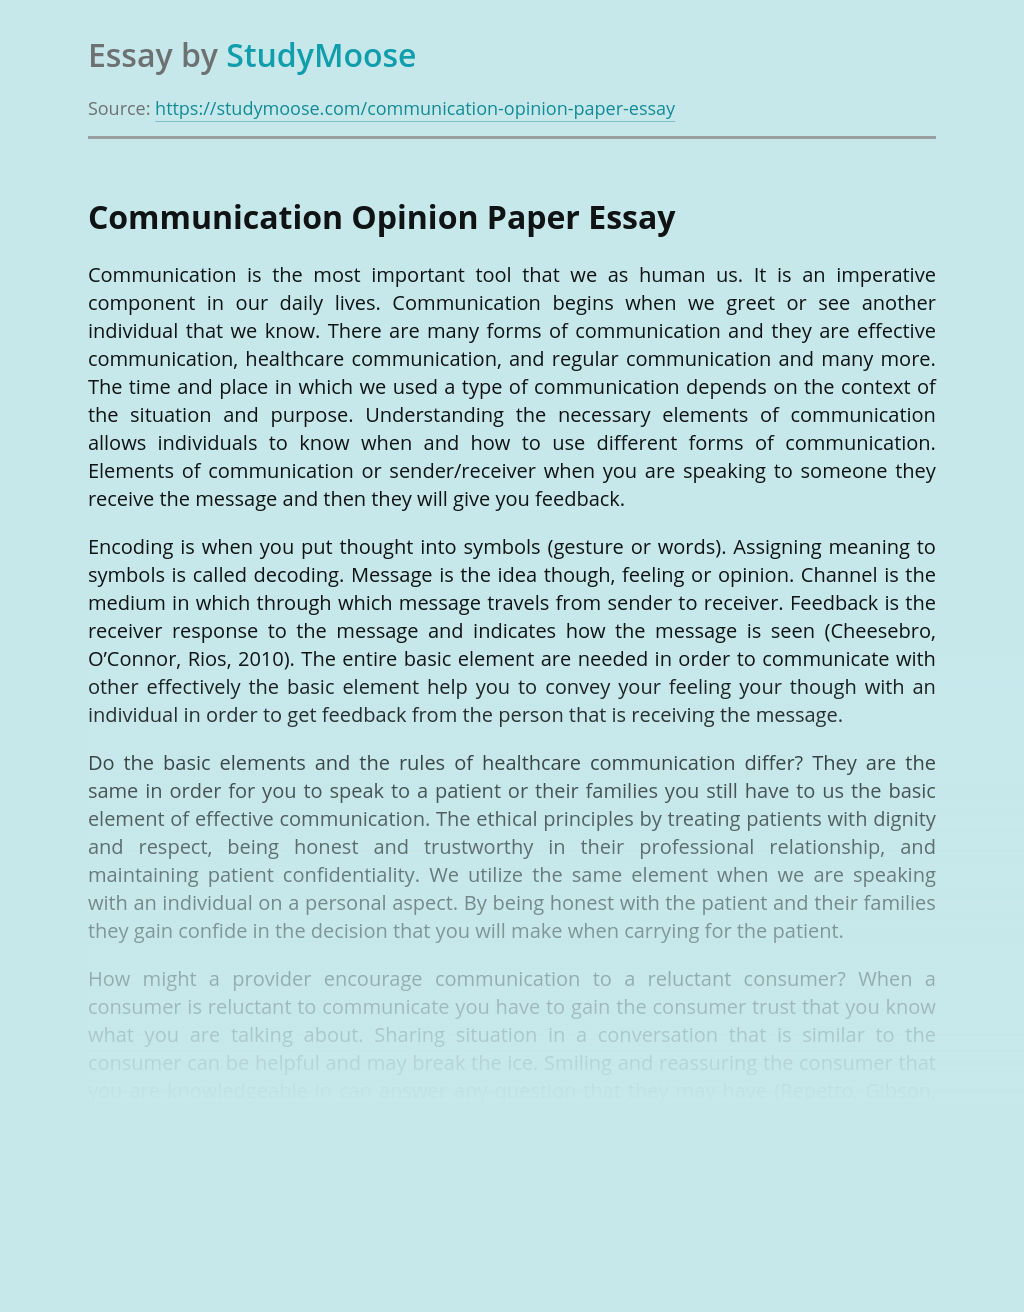 Communication Opinion Paper